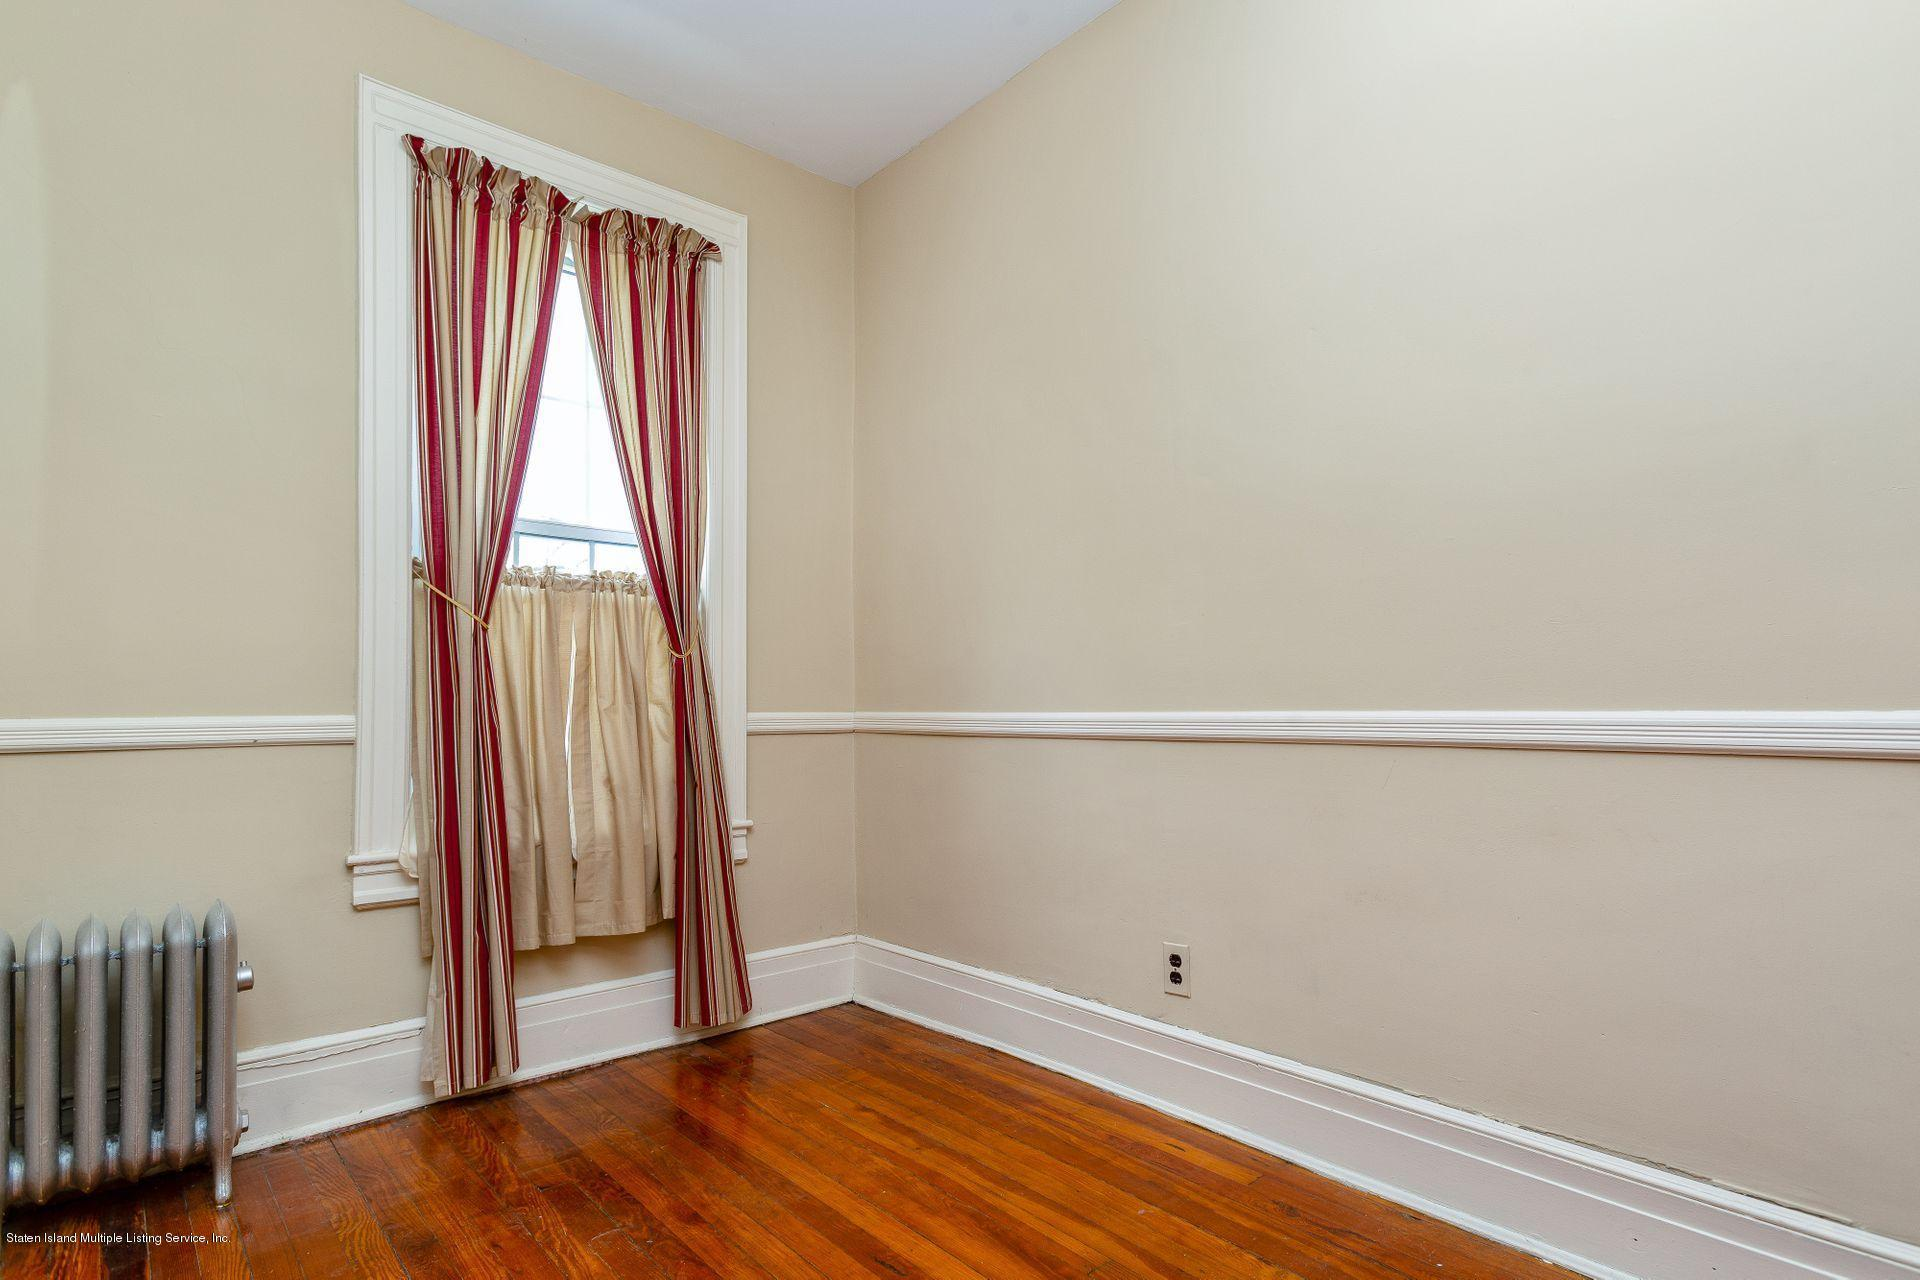 Single Family - Attached 83 Chester Avenue  Brooklyn, NY 11218, MLS-1131841-10